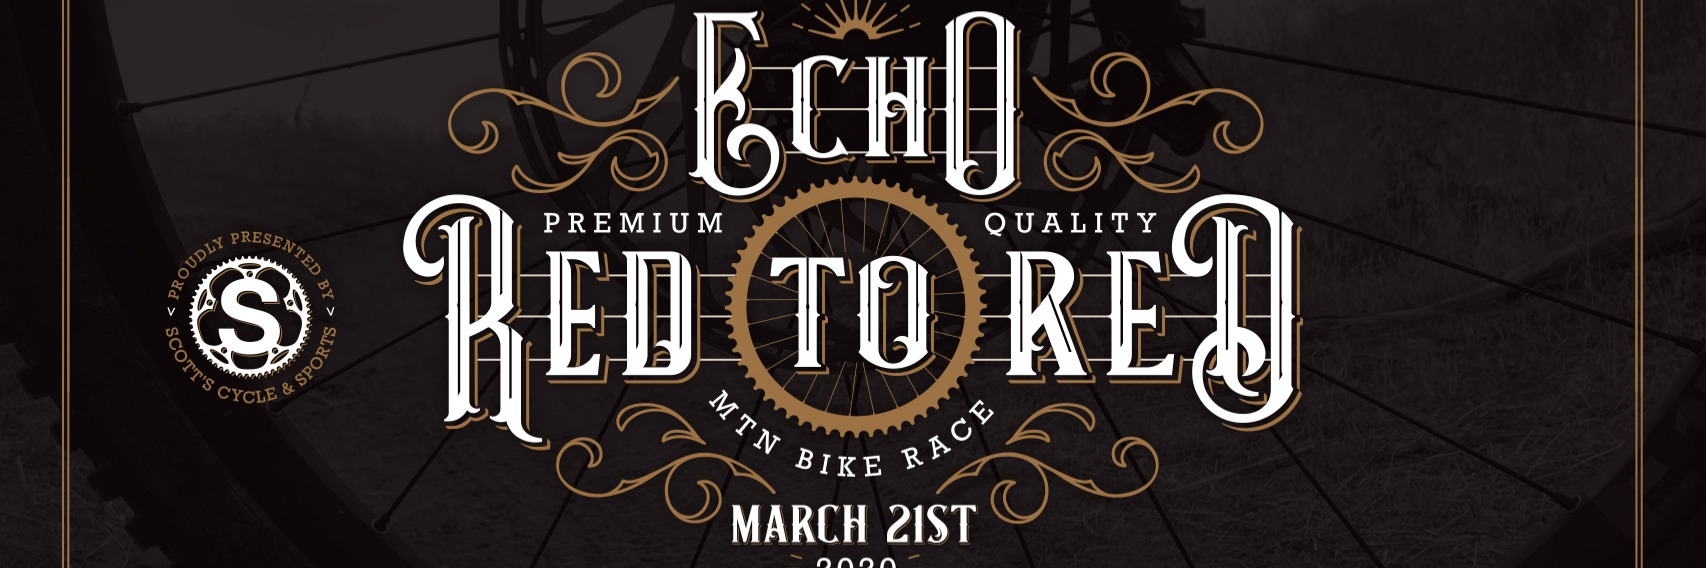 Echo Red to Red Mountain Bike Race